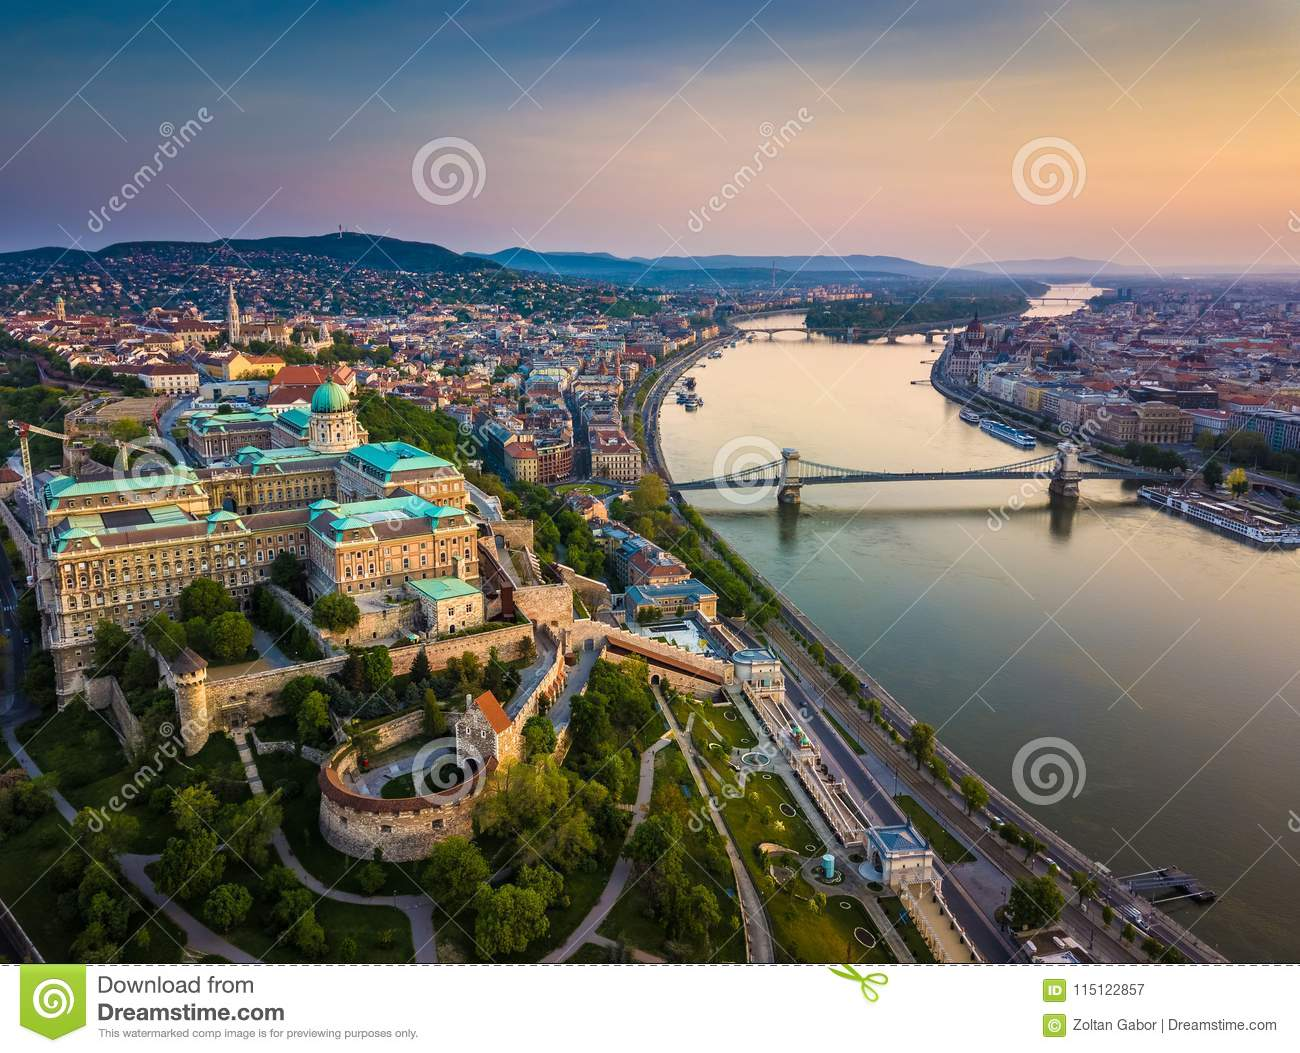 Budapest, Hungary - Aerial skyline view of Buda Castle Royal Palace and South Rondella with Castle District